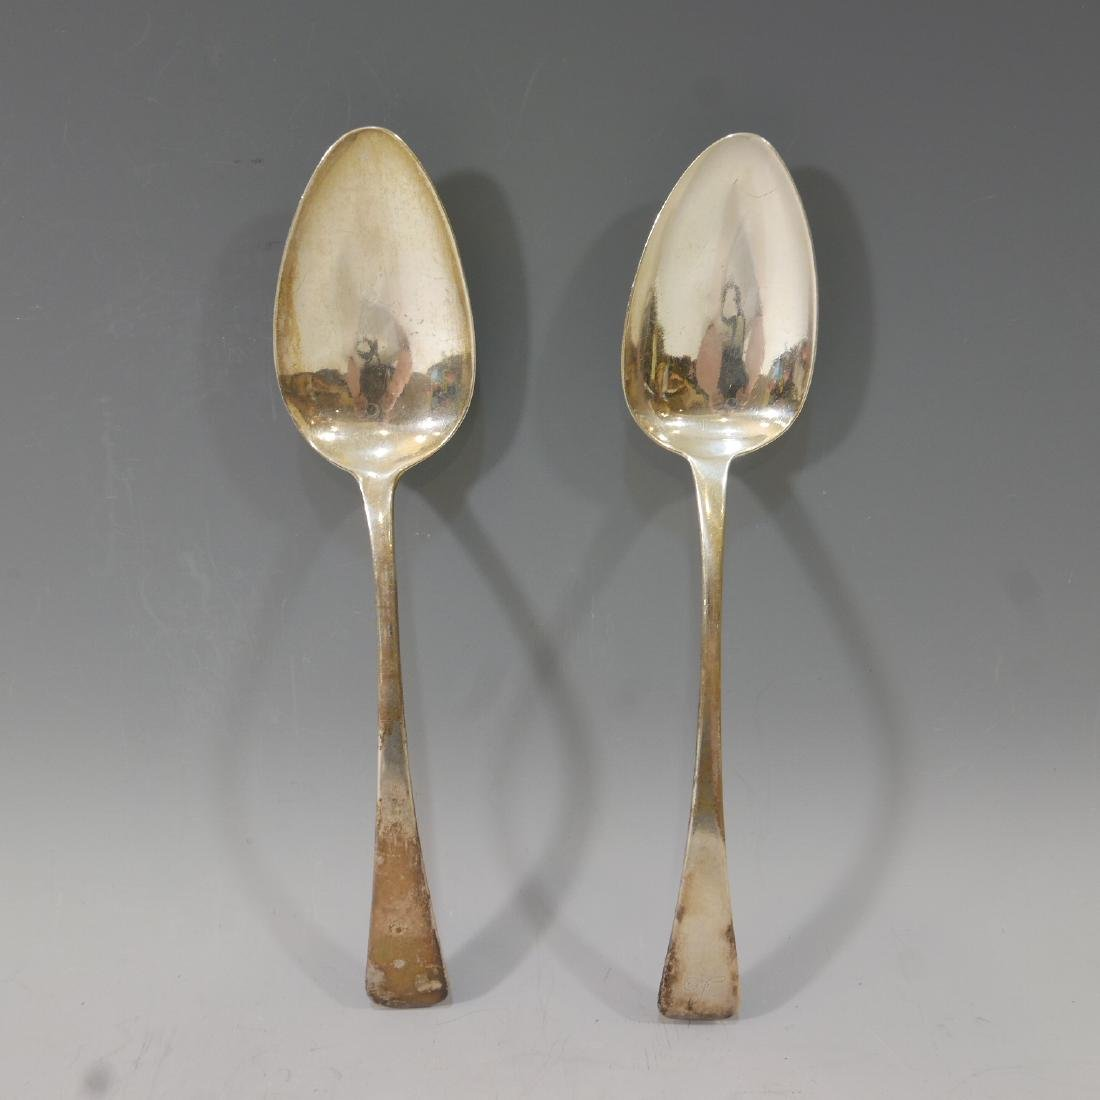 PAIR OF ANTIQUE ENGLISH STERLING SILVER LARGE SPOON 116